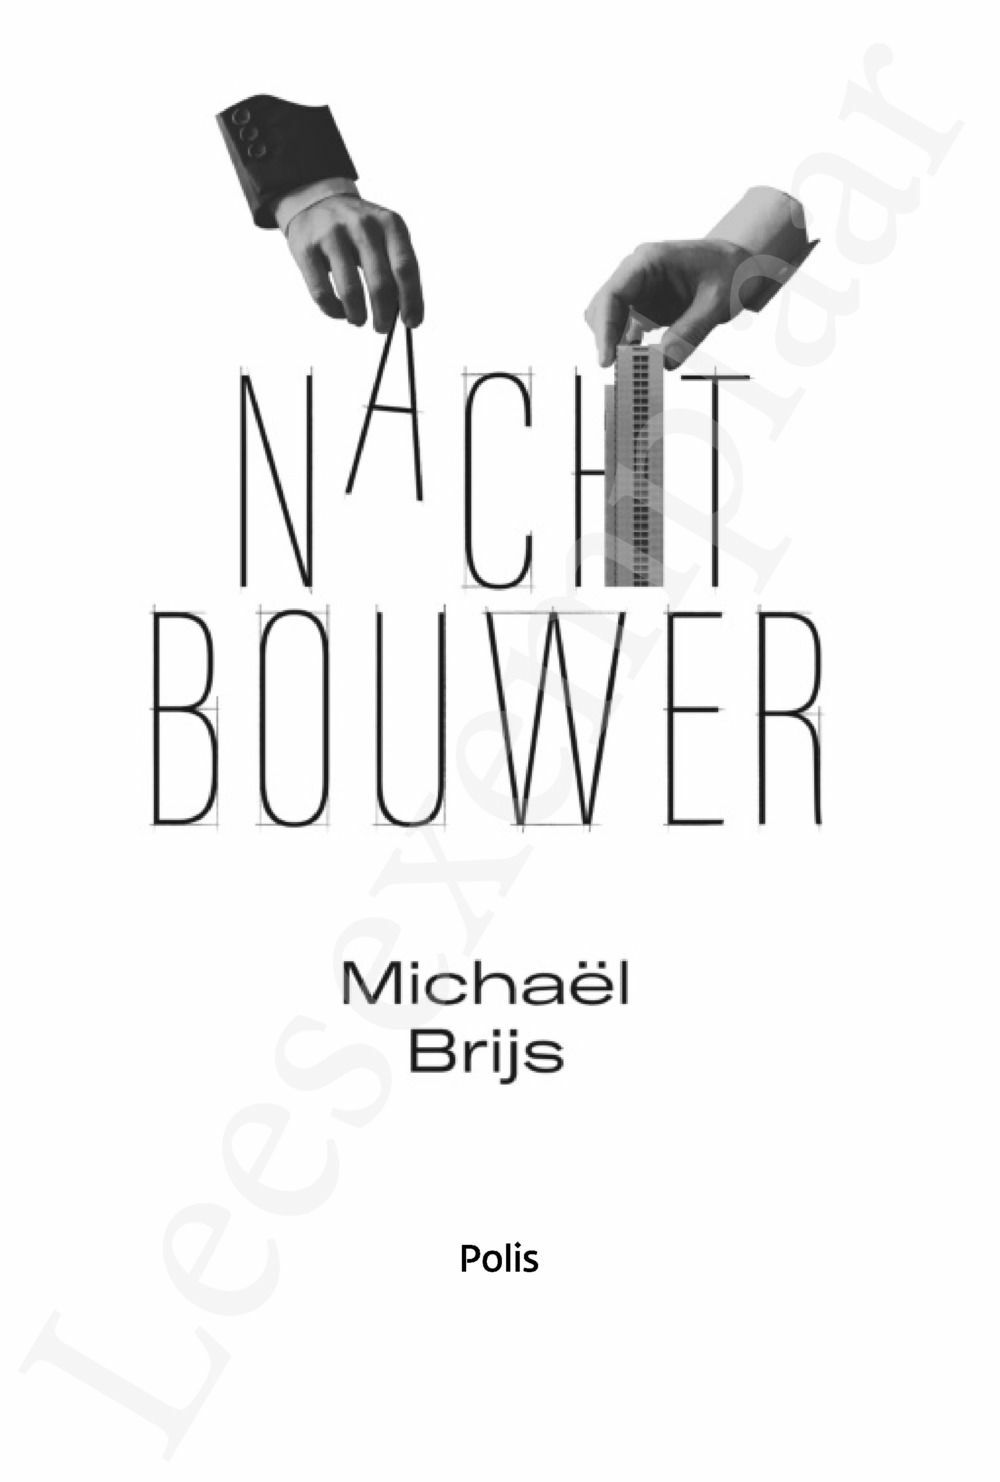 Preview: Nachtbouwer